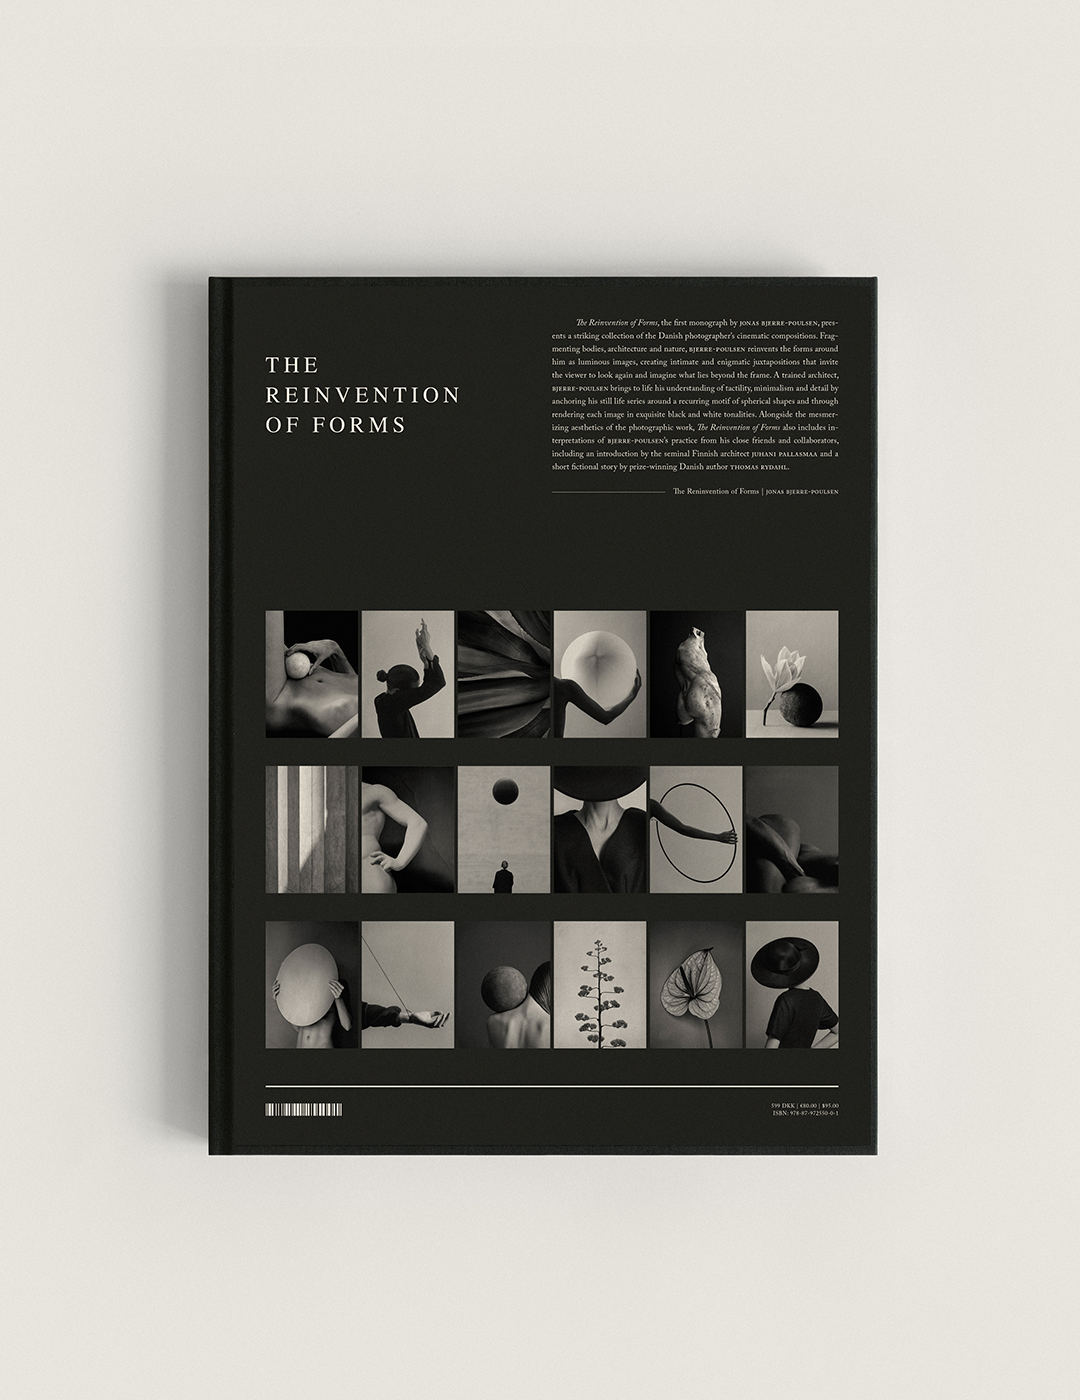 TheReinventionOfForms_JonasBjerrePoulsen_Etui_Packshot_Mobile_06-1